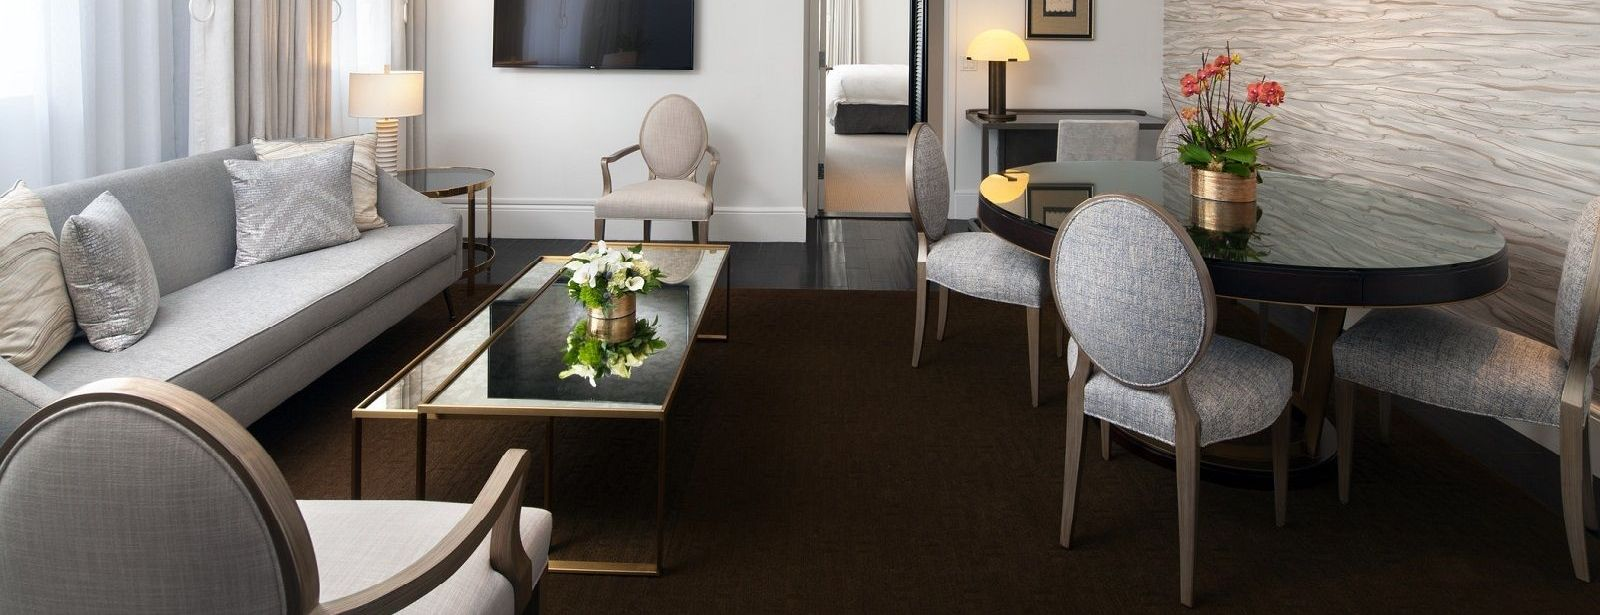 The US GRANT, A Luxury Collection Hotel, San Diego - Ulysses Suite